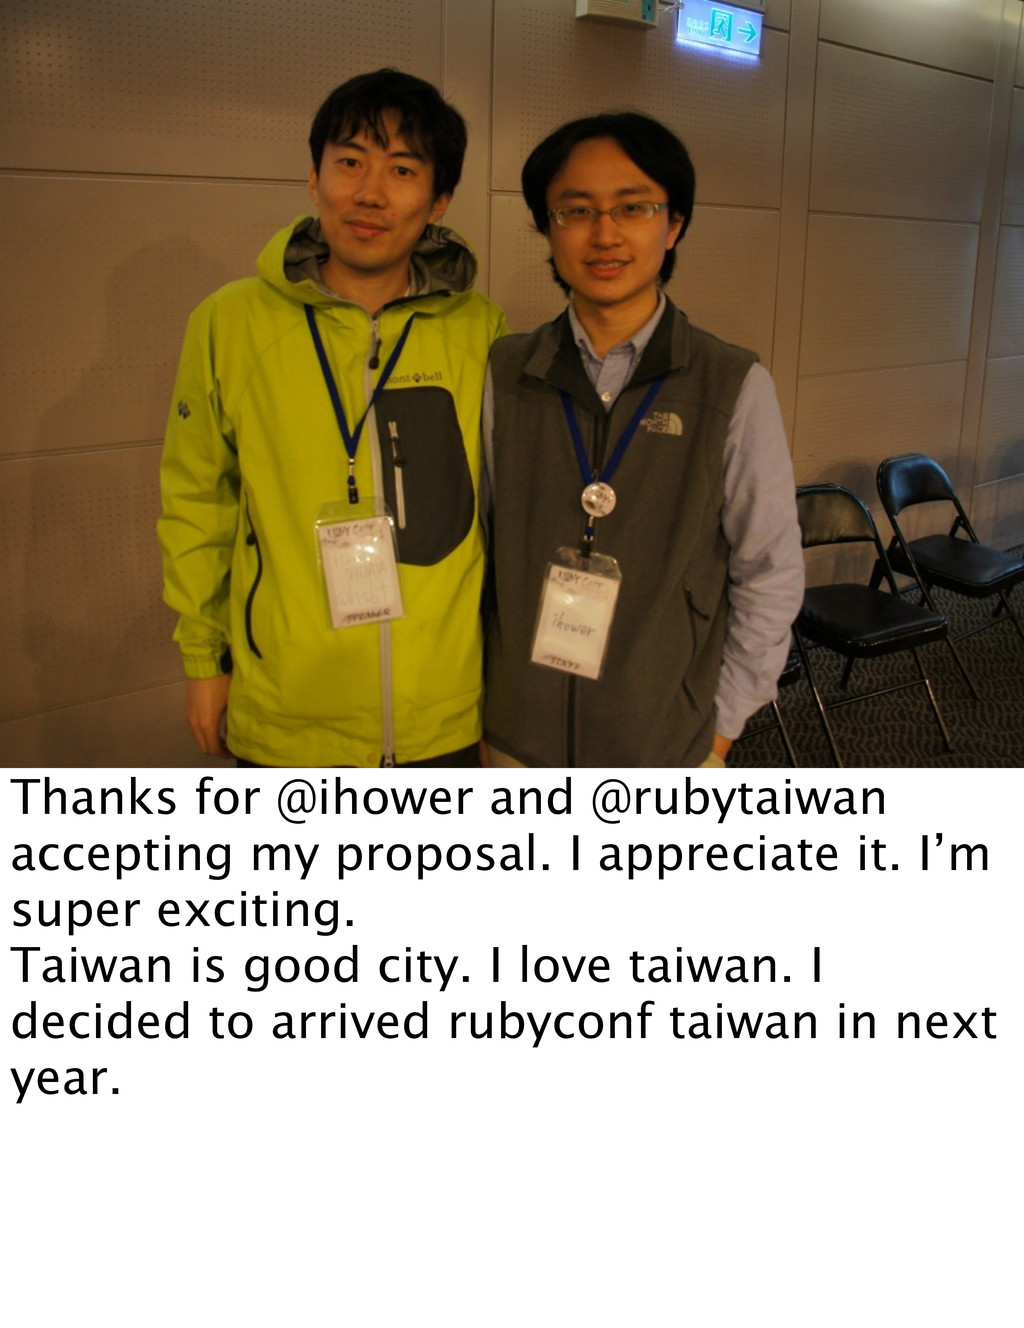 Thanks for @ihower and @rubytaiwan accepting my...